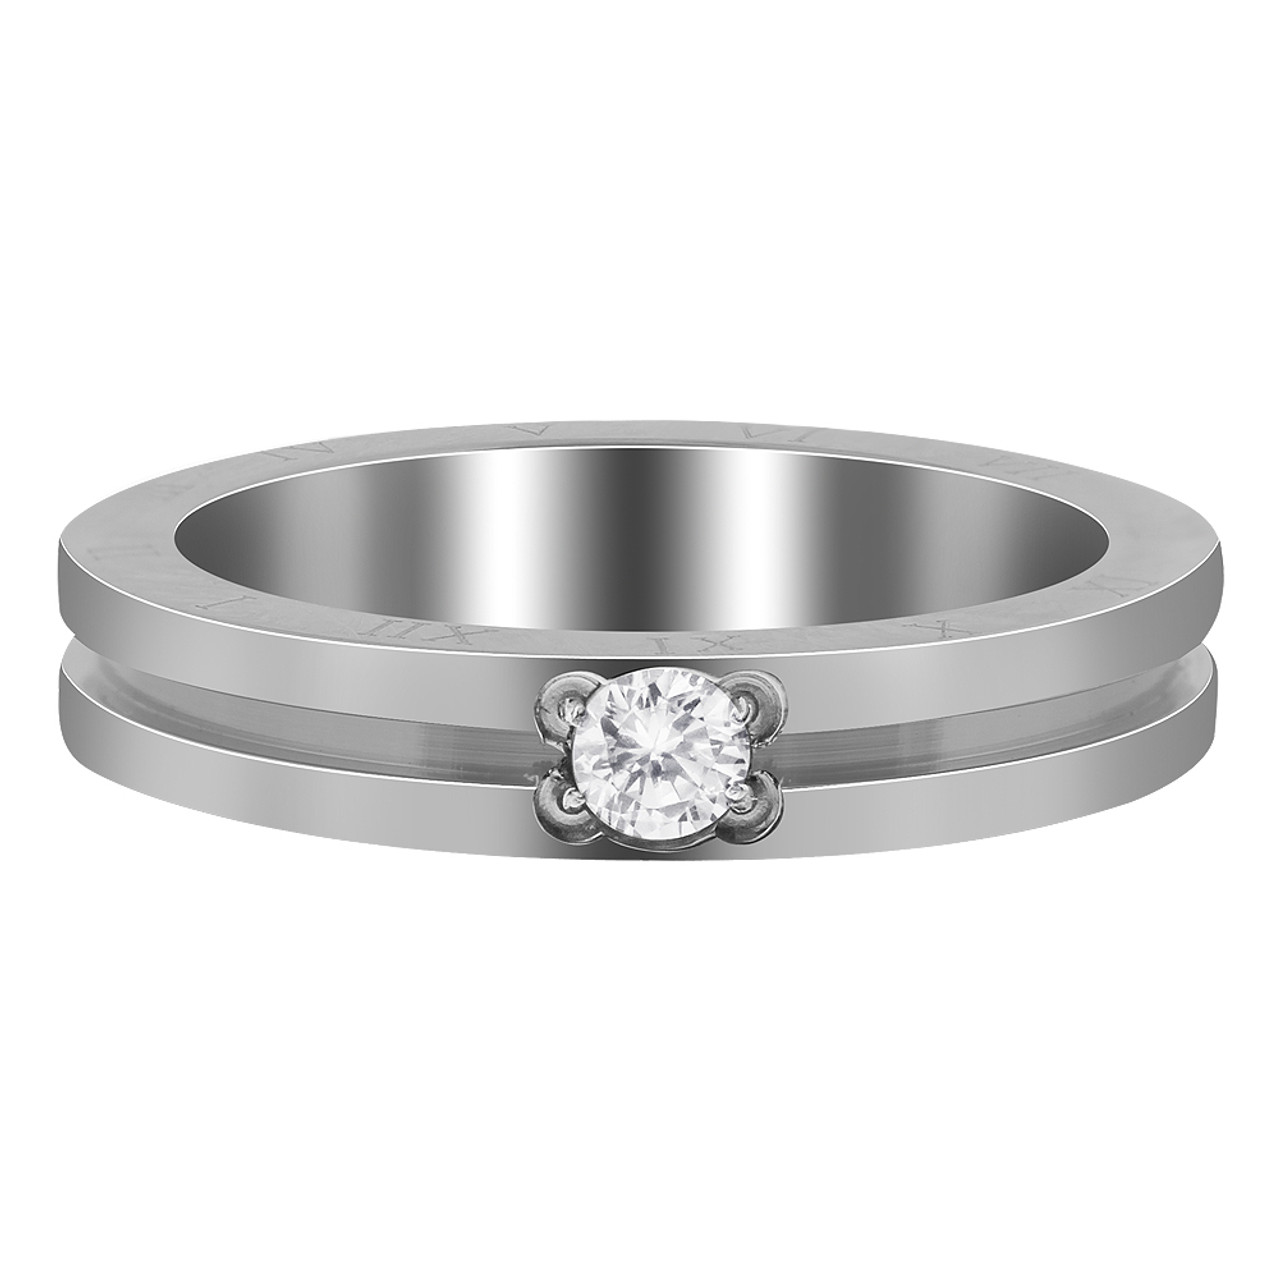 Stainless Steel Grooved Slim CZ & Roman Numbers Ring